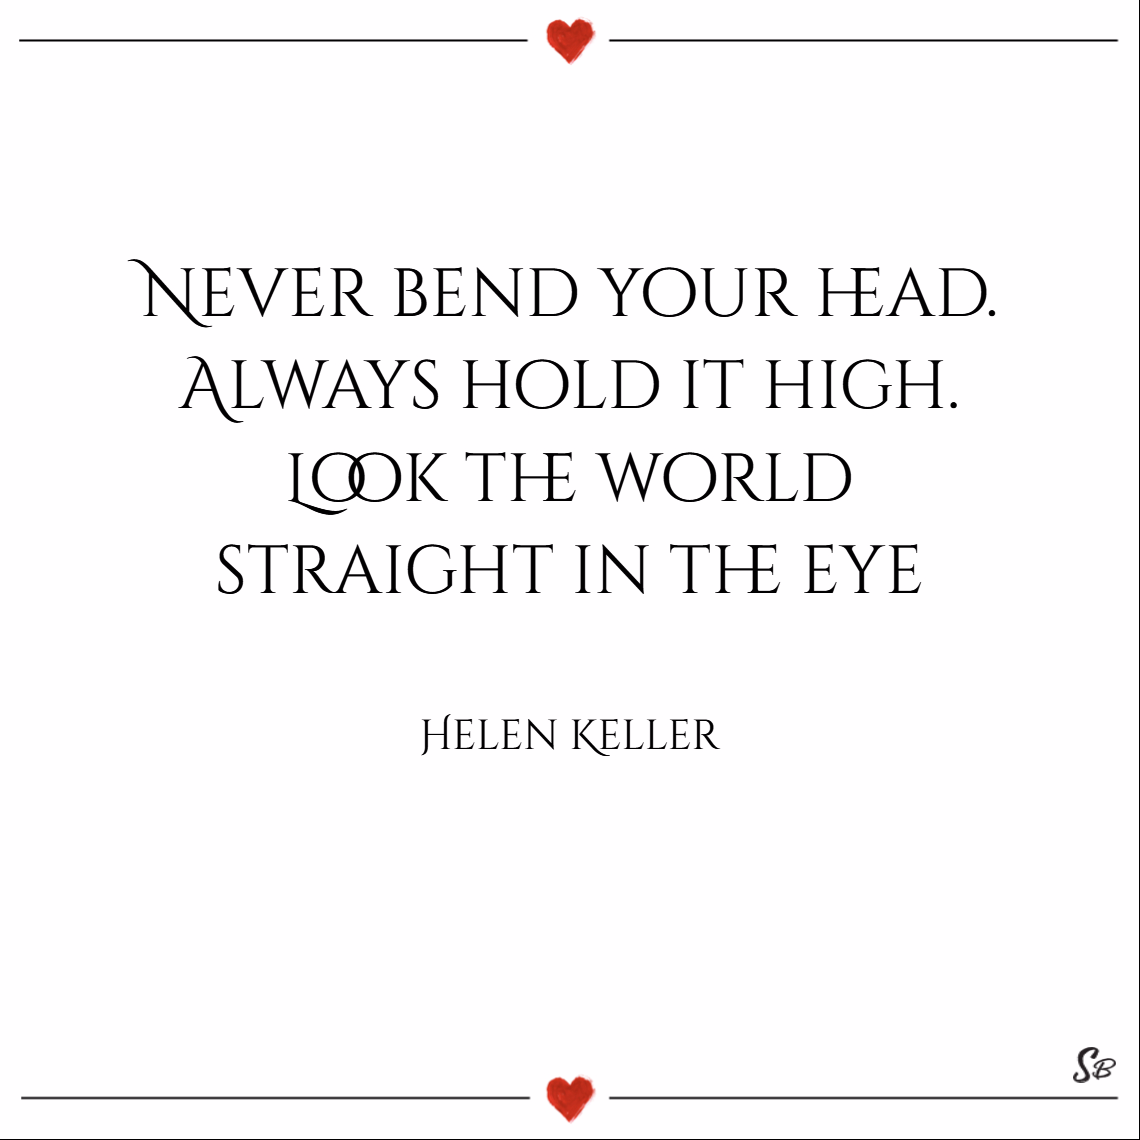 Never bend your head. always hold it high. look the world straight in the eye. – helen keller